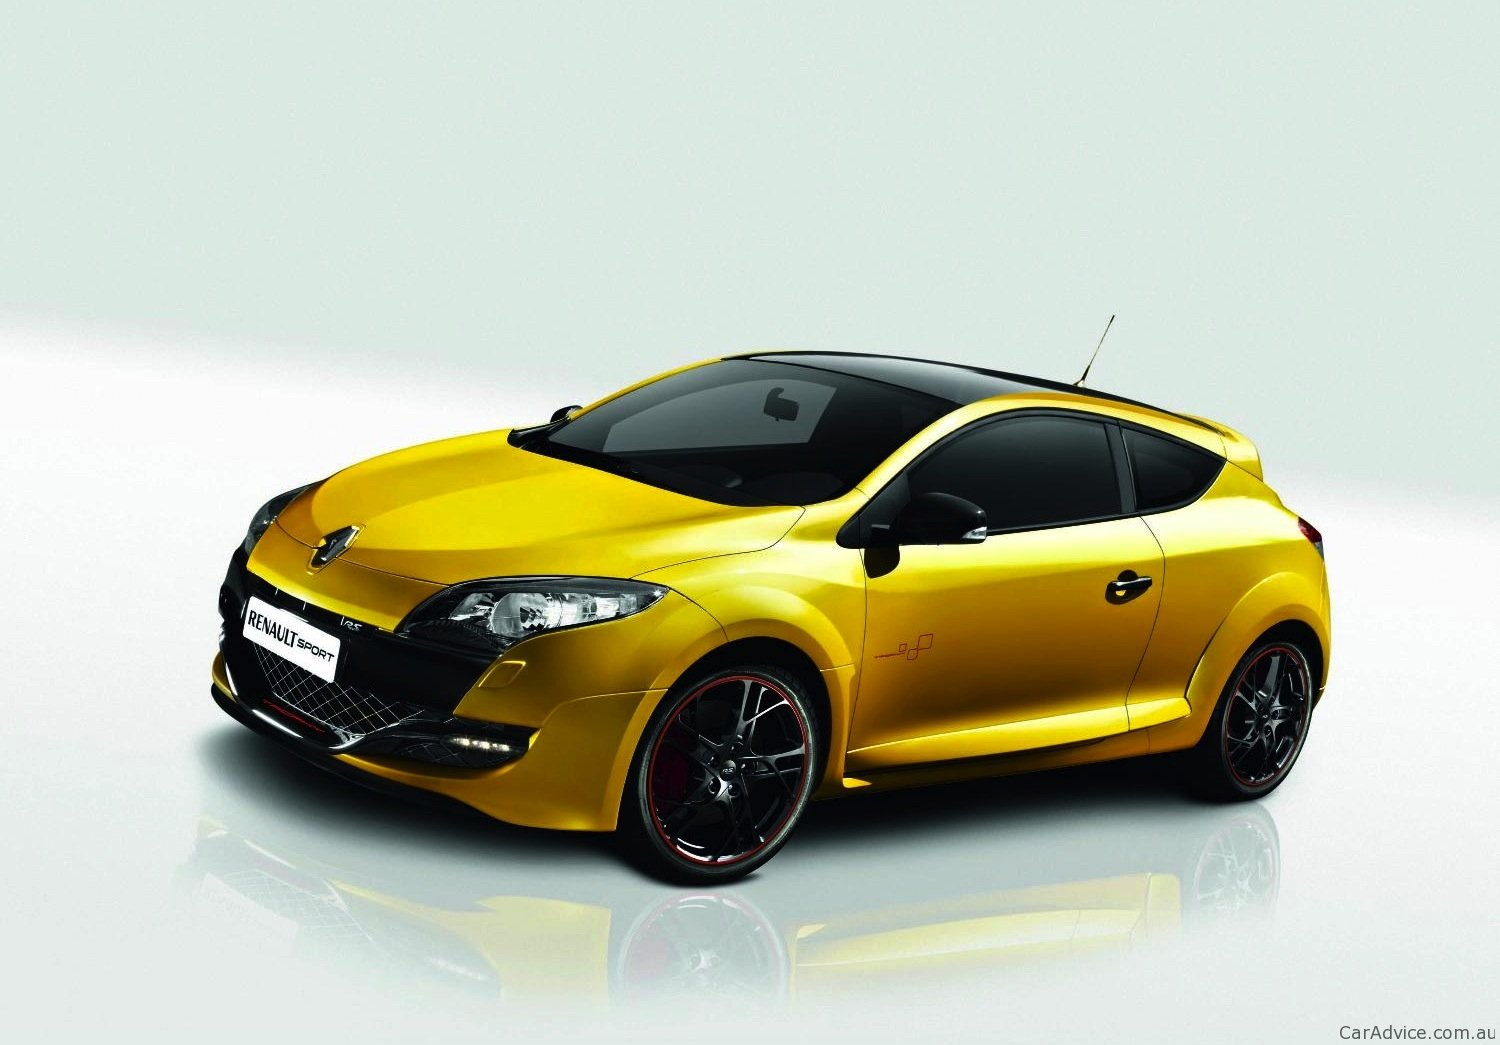 2011 Megane Renault Sport 265 Trophy Revealed Photos Caradvice